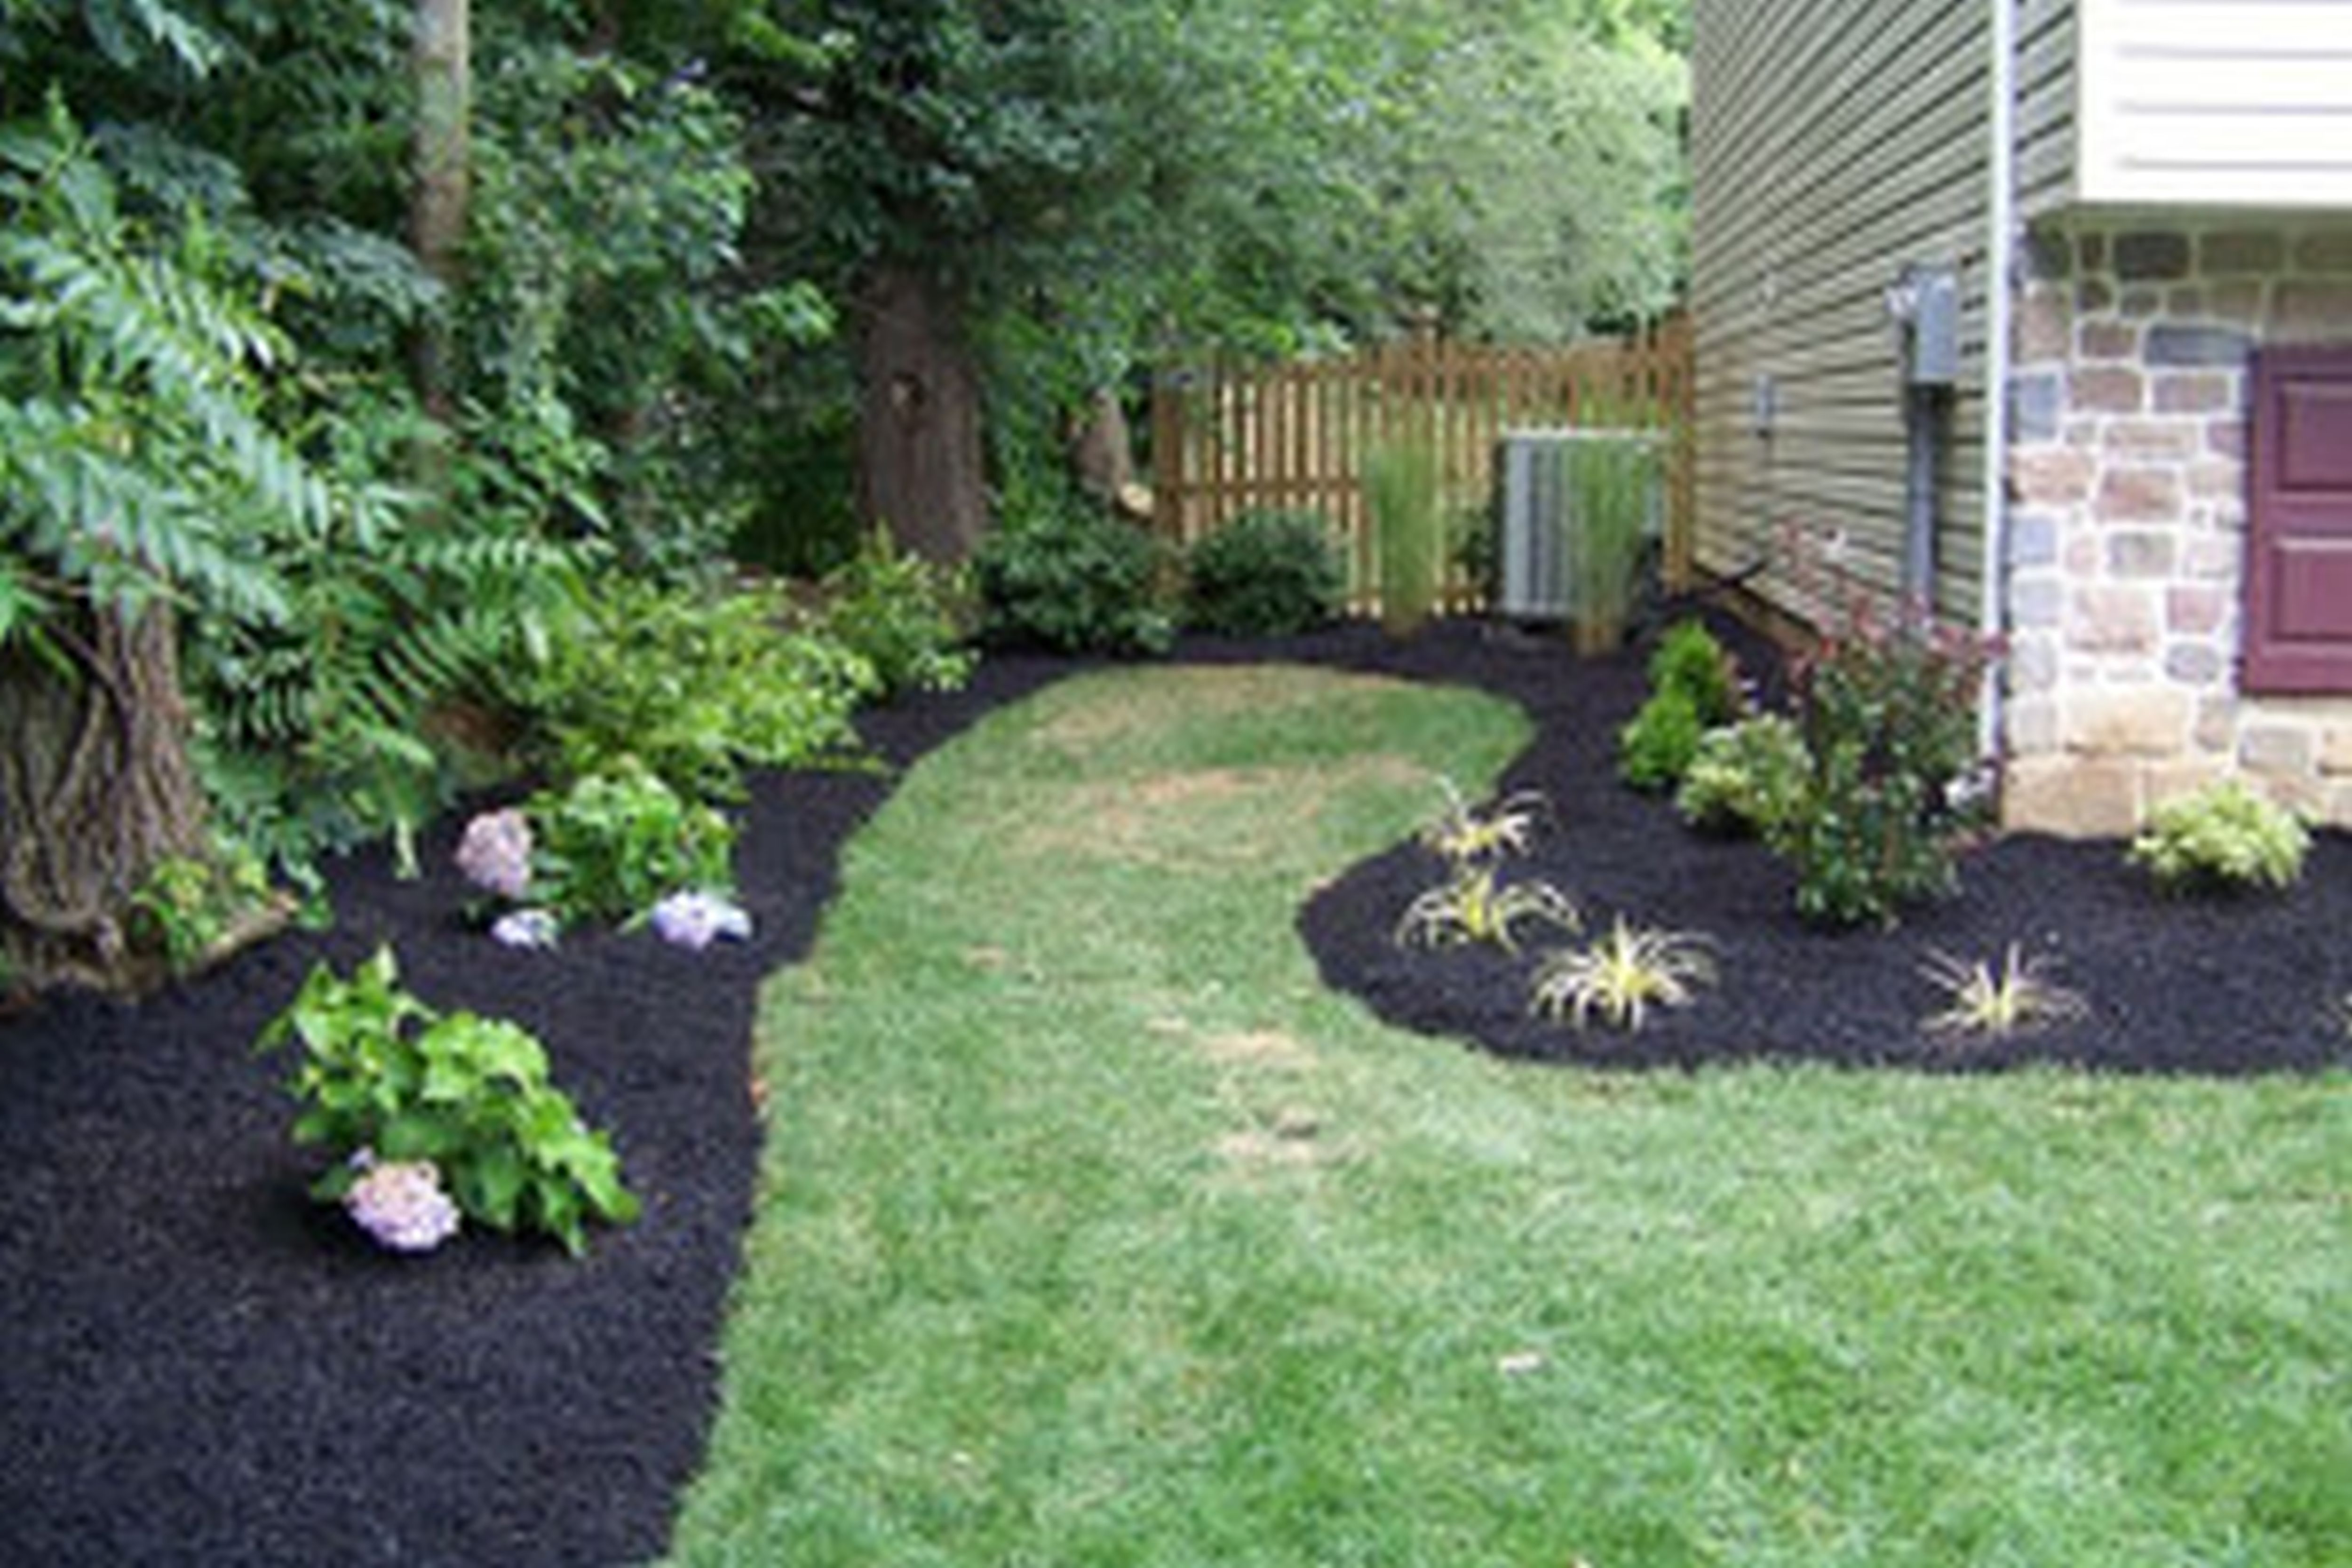 landscape ideas simple small backyard landscaping ideas image of cheap small backyard landscaping  ideas backyard small backyard landscaping DMEKTXY